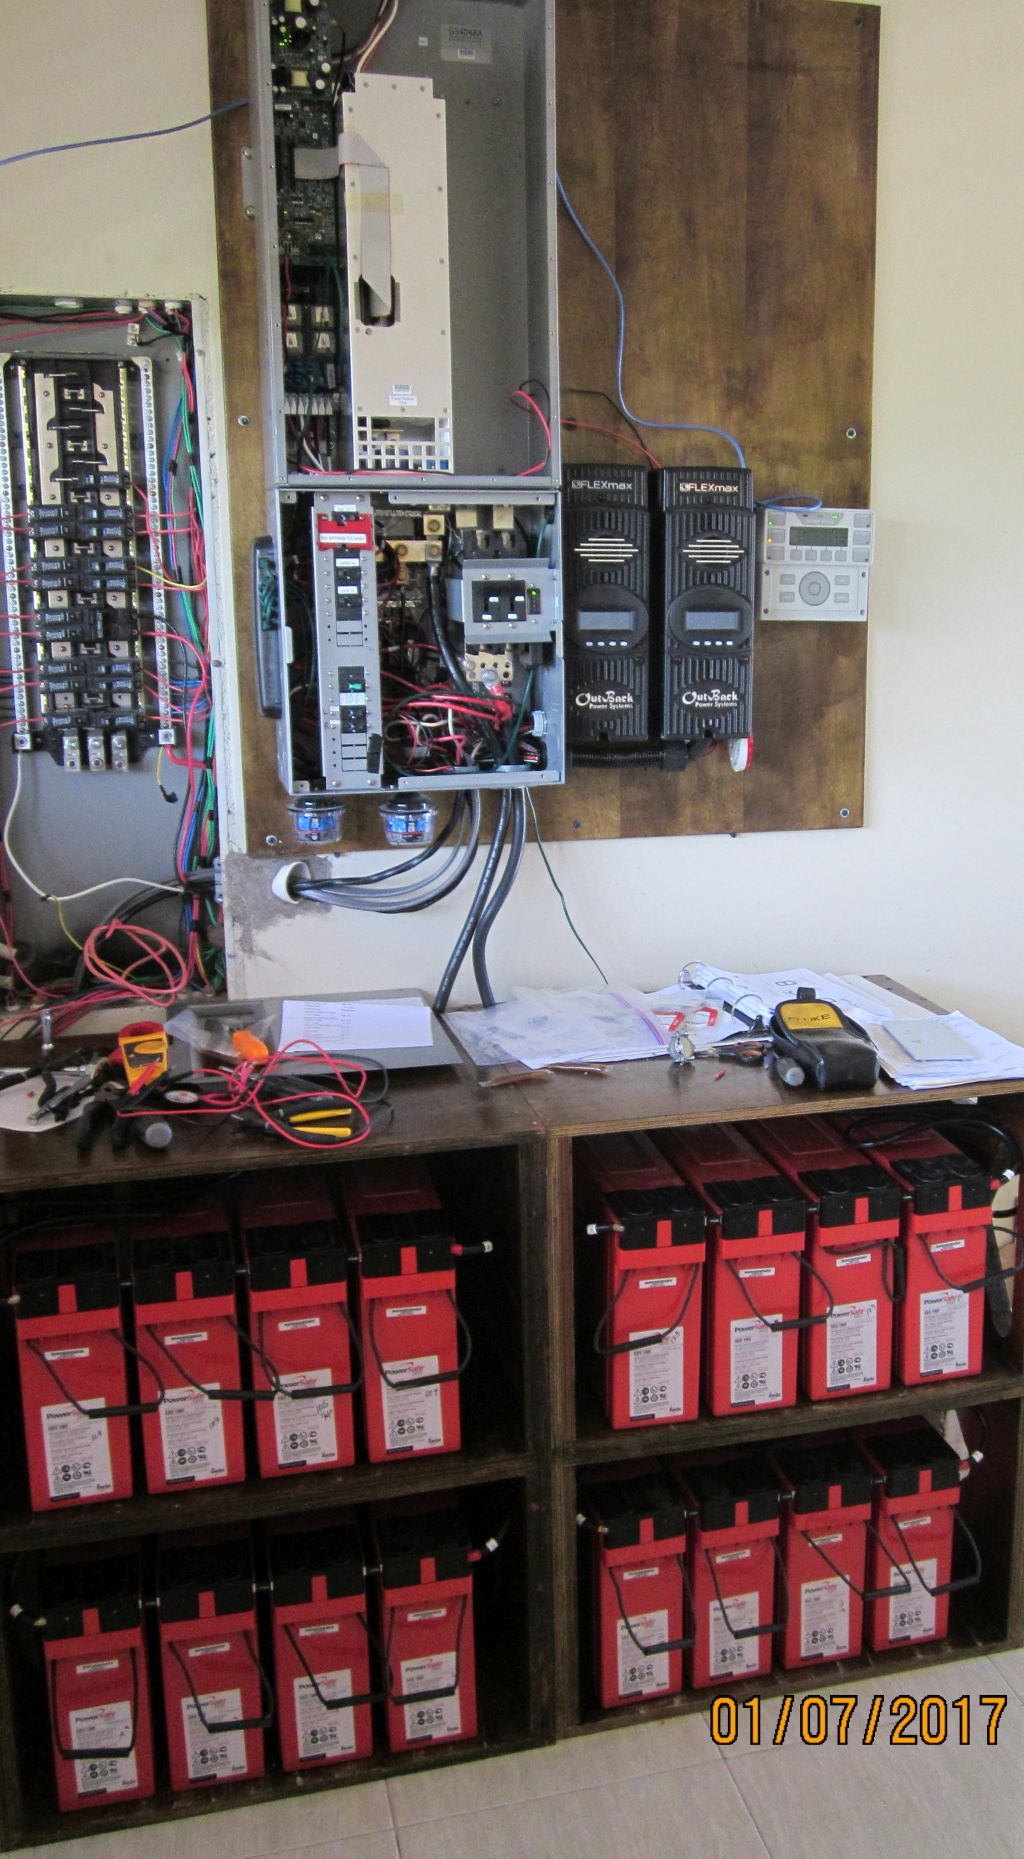 Outback controls and battery bank